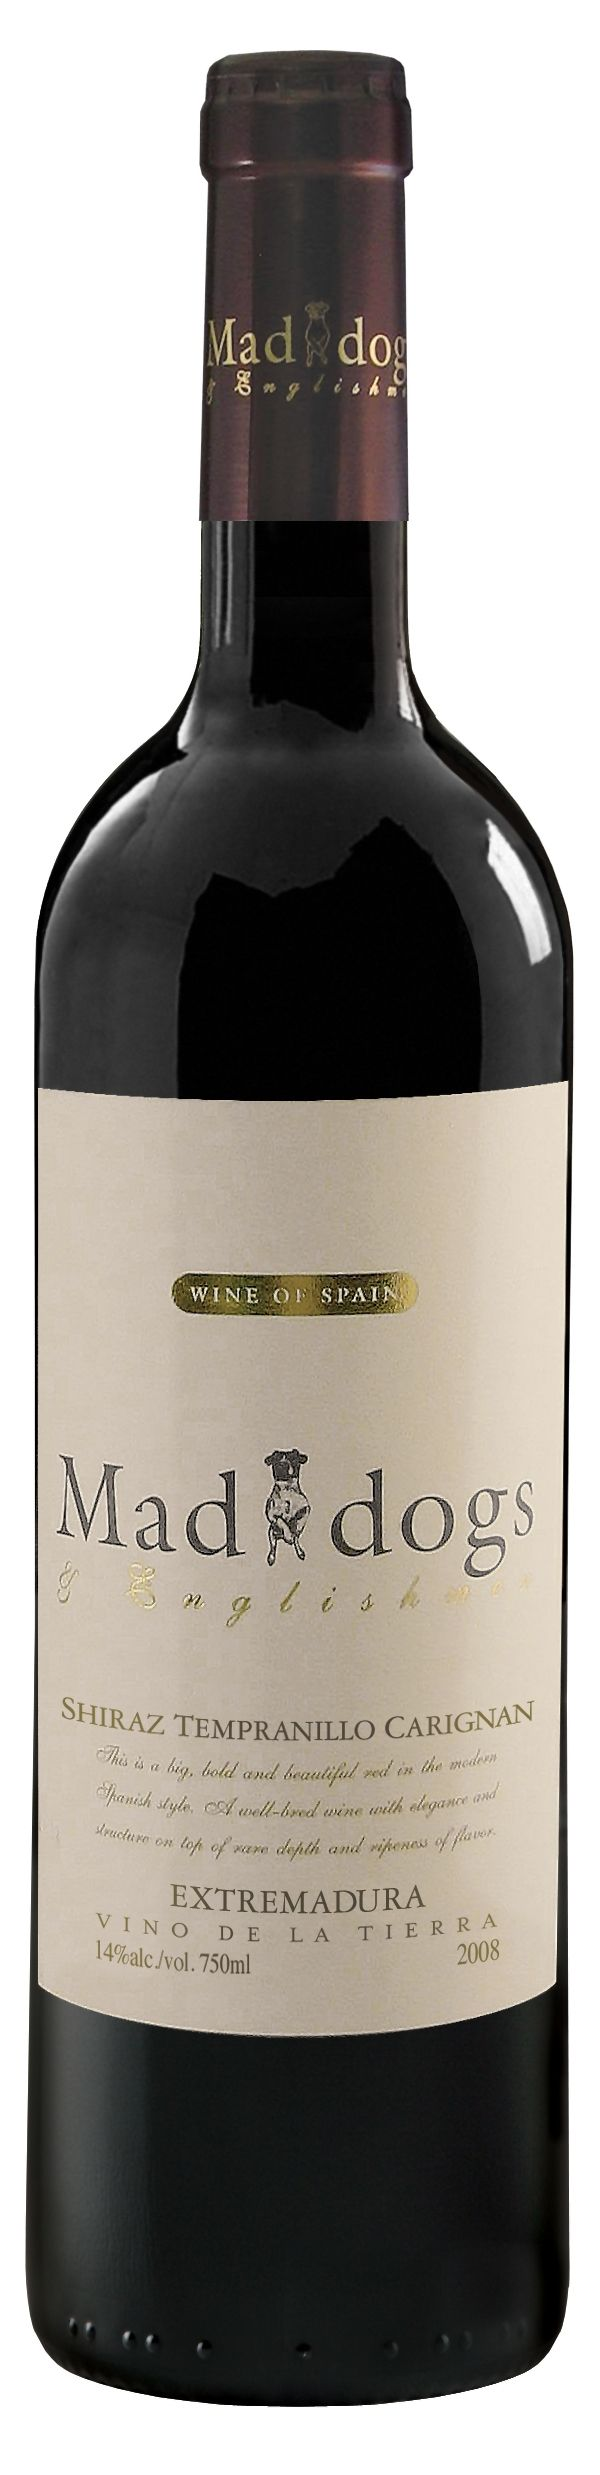 """Enjoyed this """"Mad Dogs & Englishmen"""" Spanish wine last night. A big (dry) red that blends Shiraz, Tempranillo, and Carignan."""